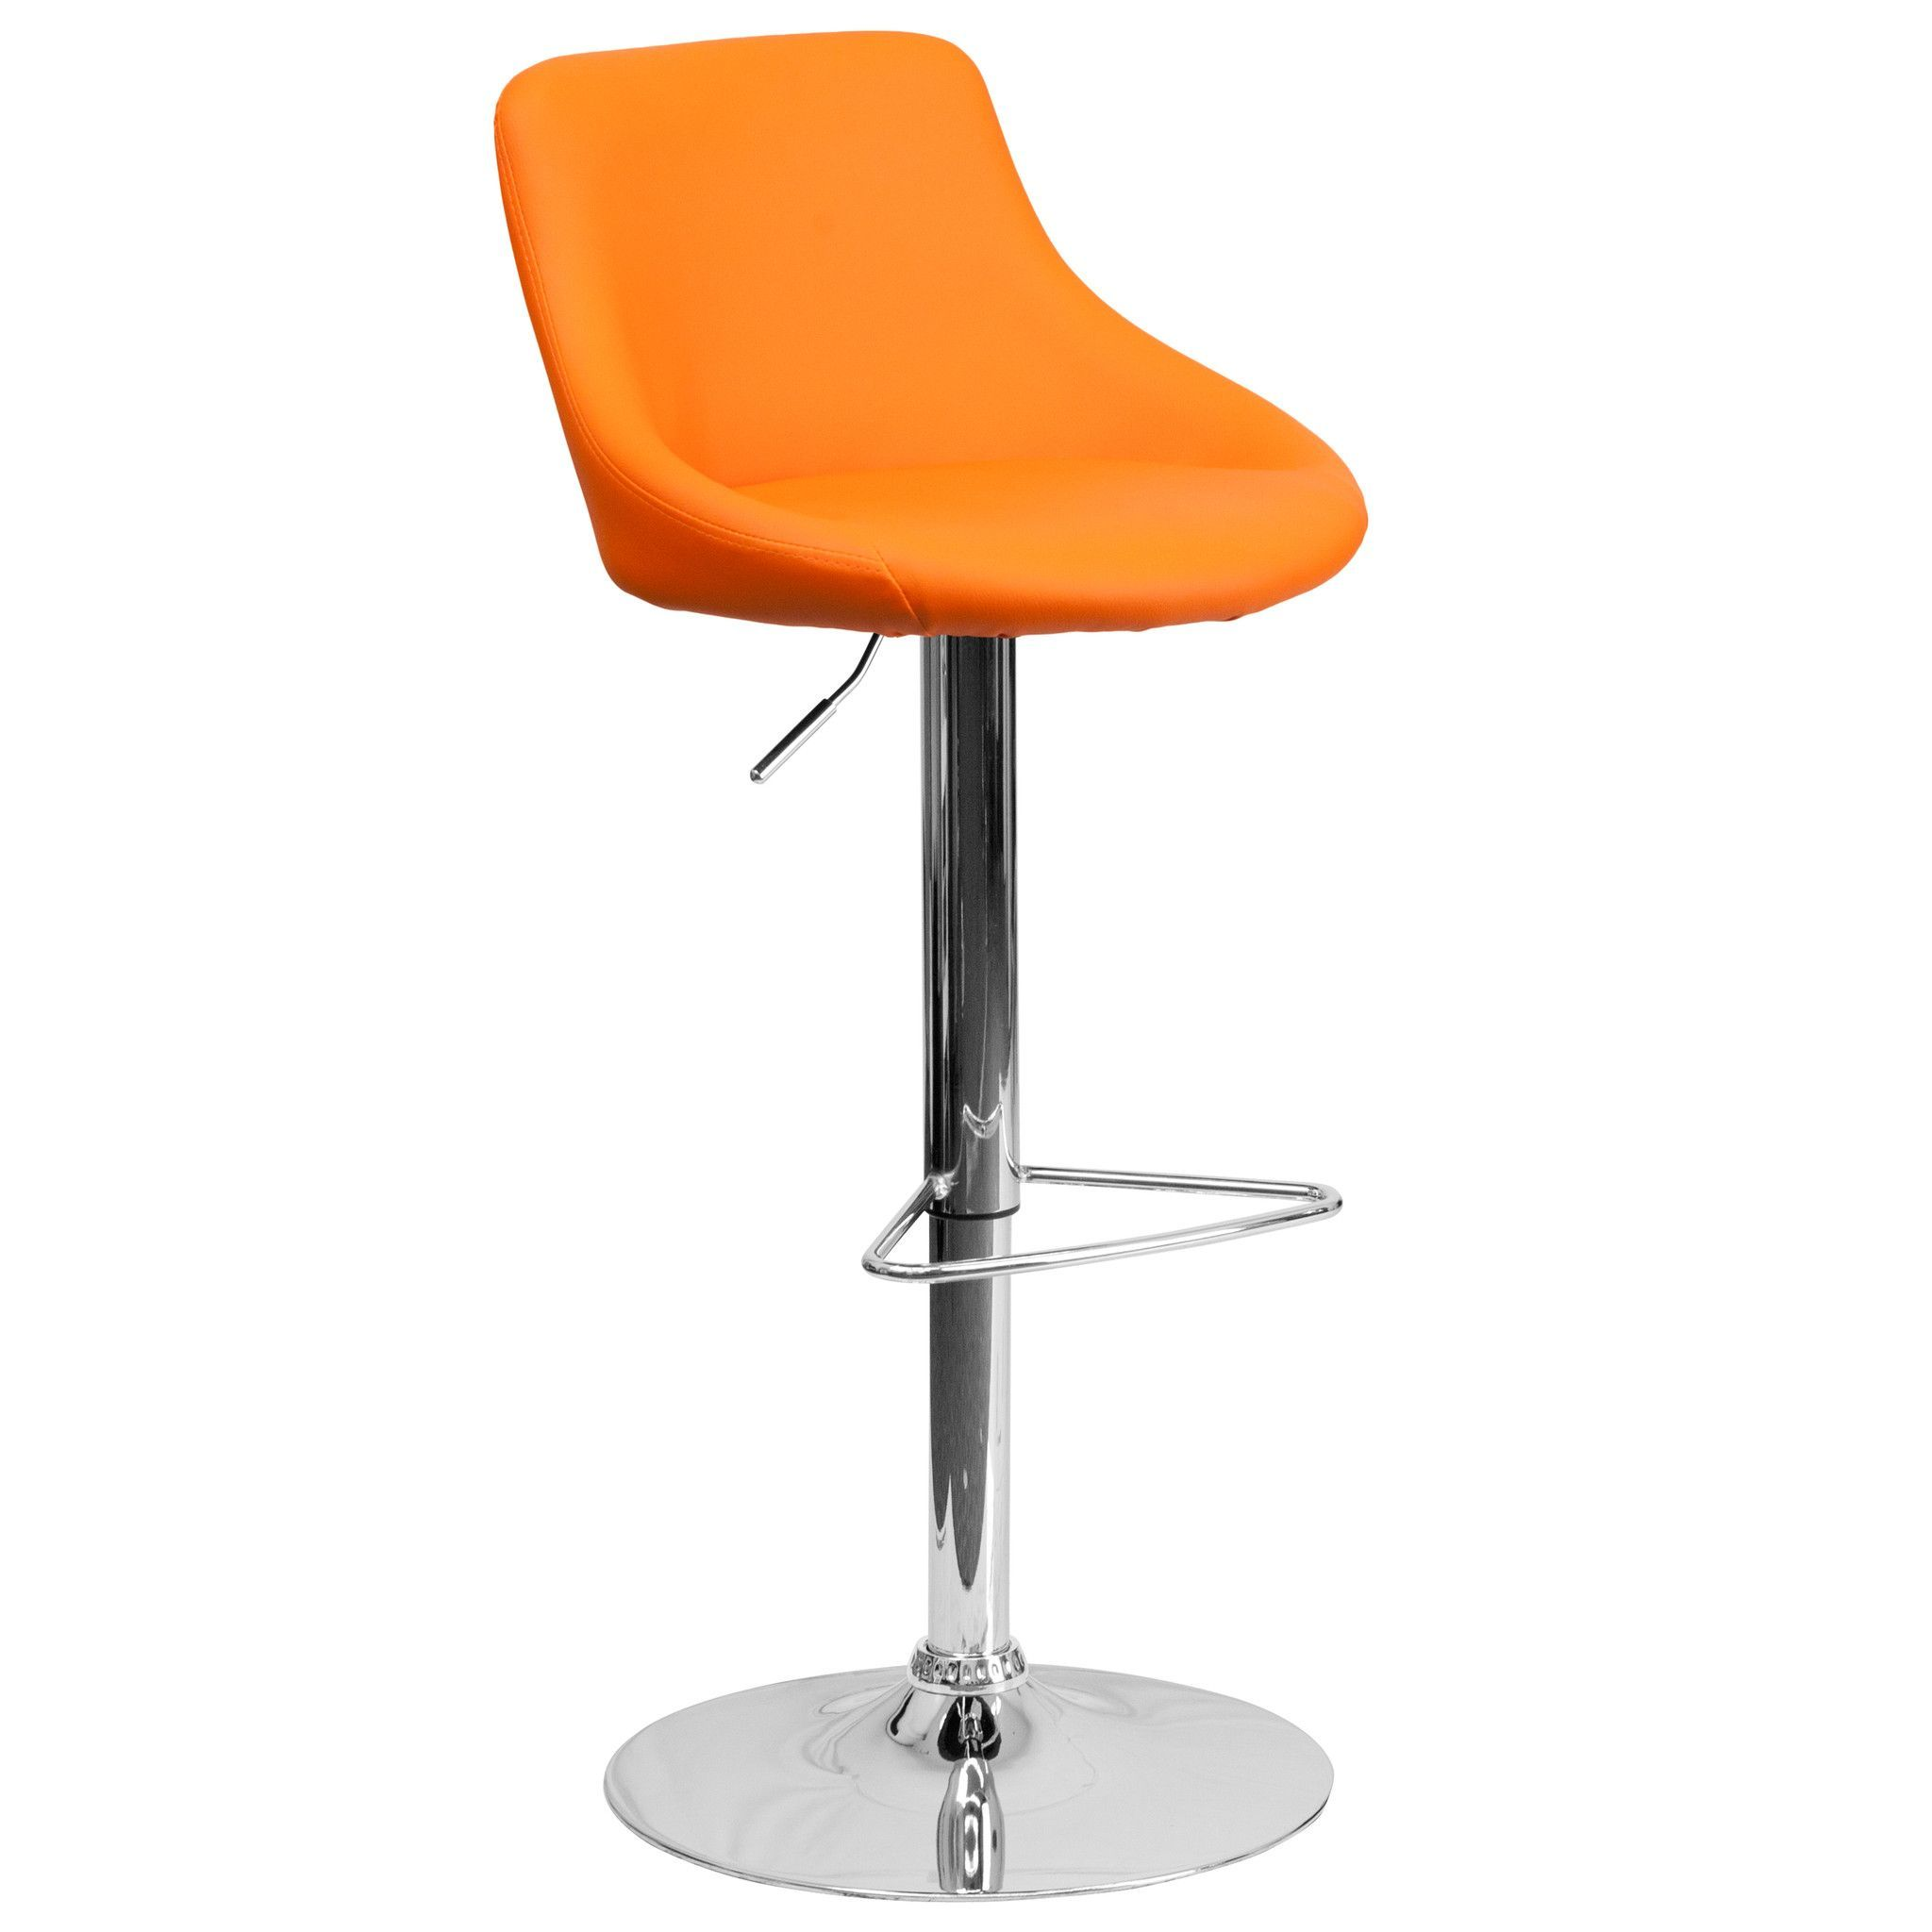 Designer Bucket Seat Swivel Home Office Kitchen Bar Stools Chairs 6-Colors  #82028 (